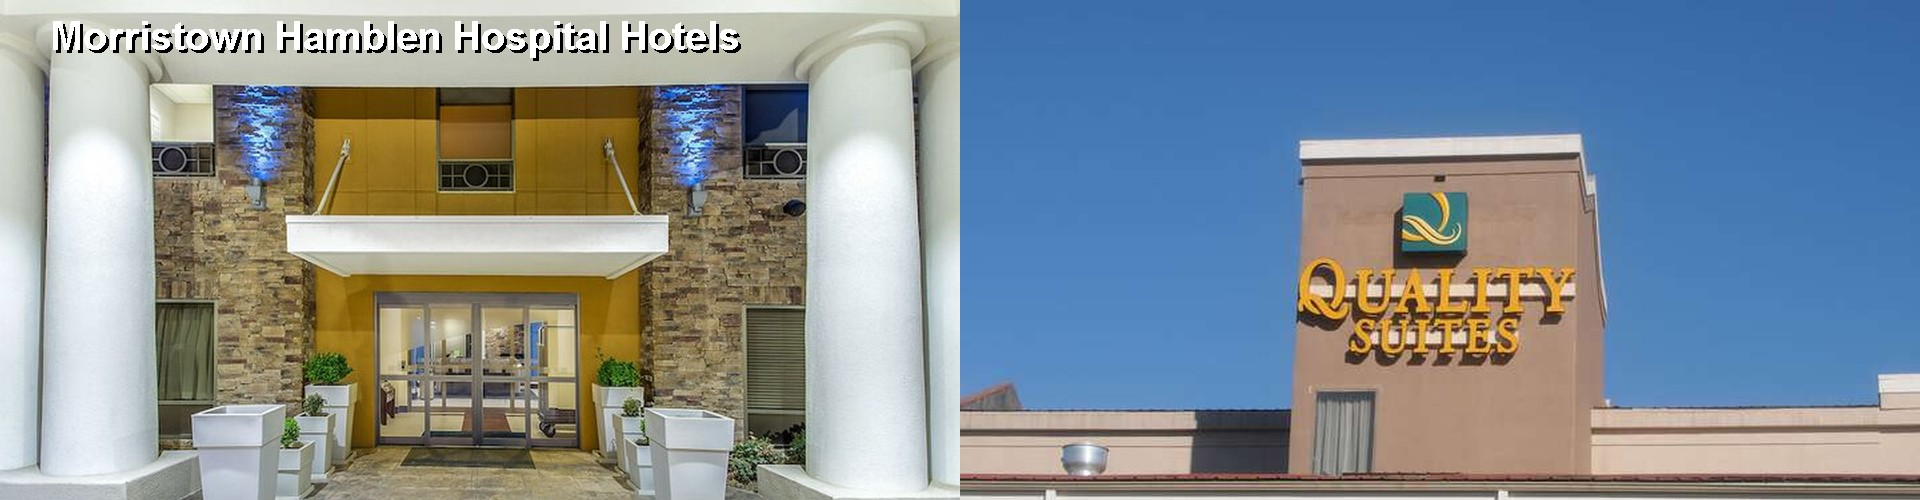 5 Best Hotels near Morristown Hamblen Hospital